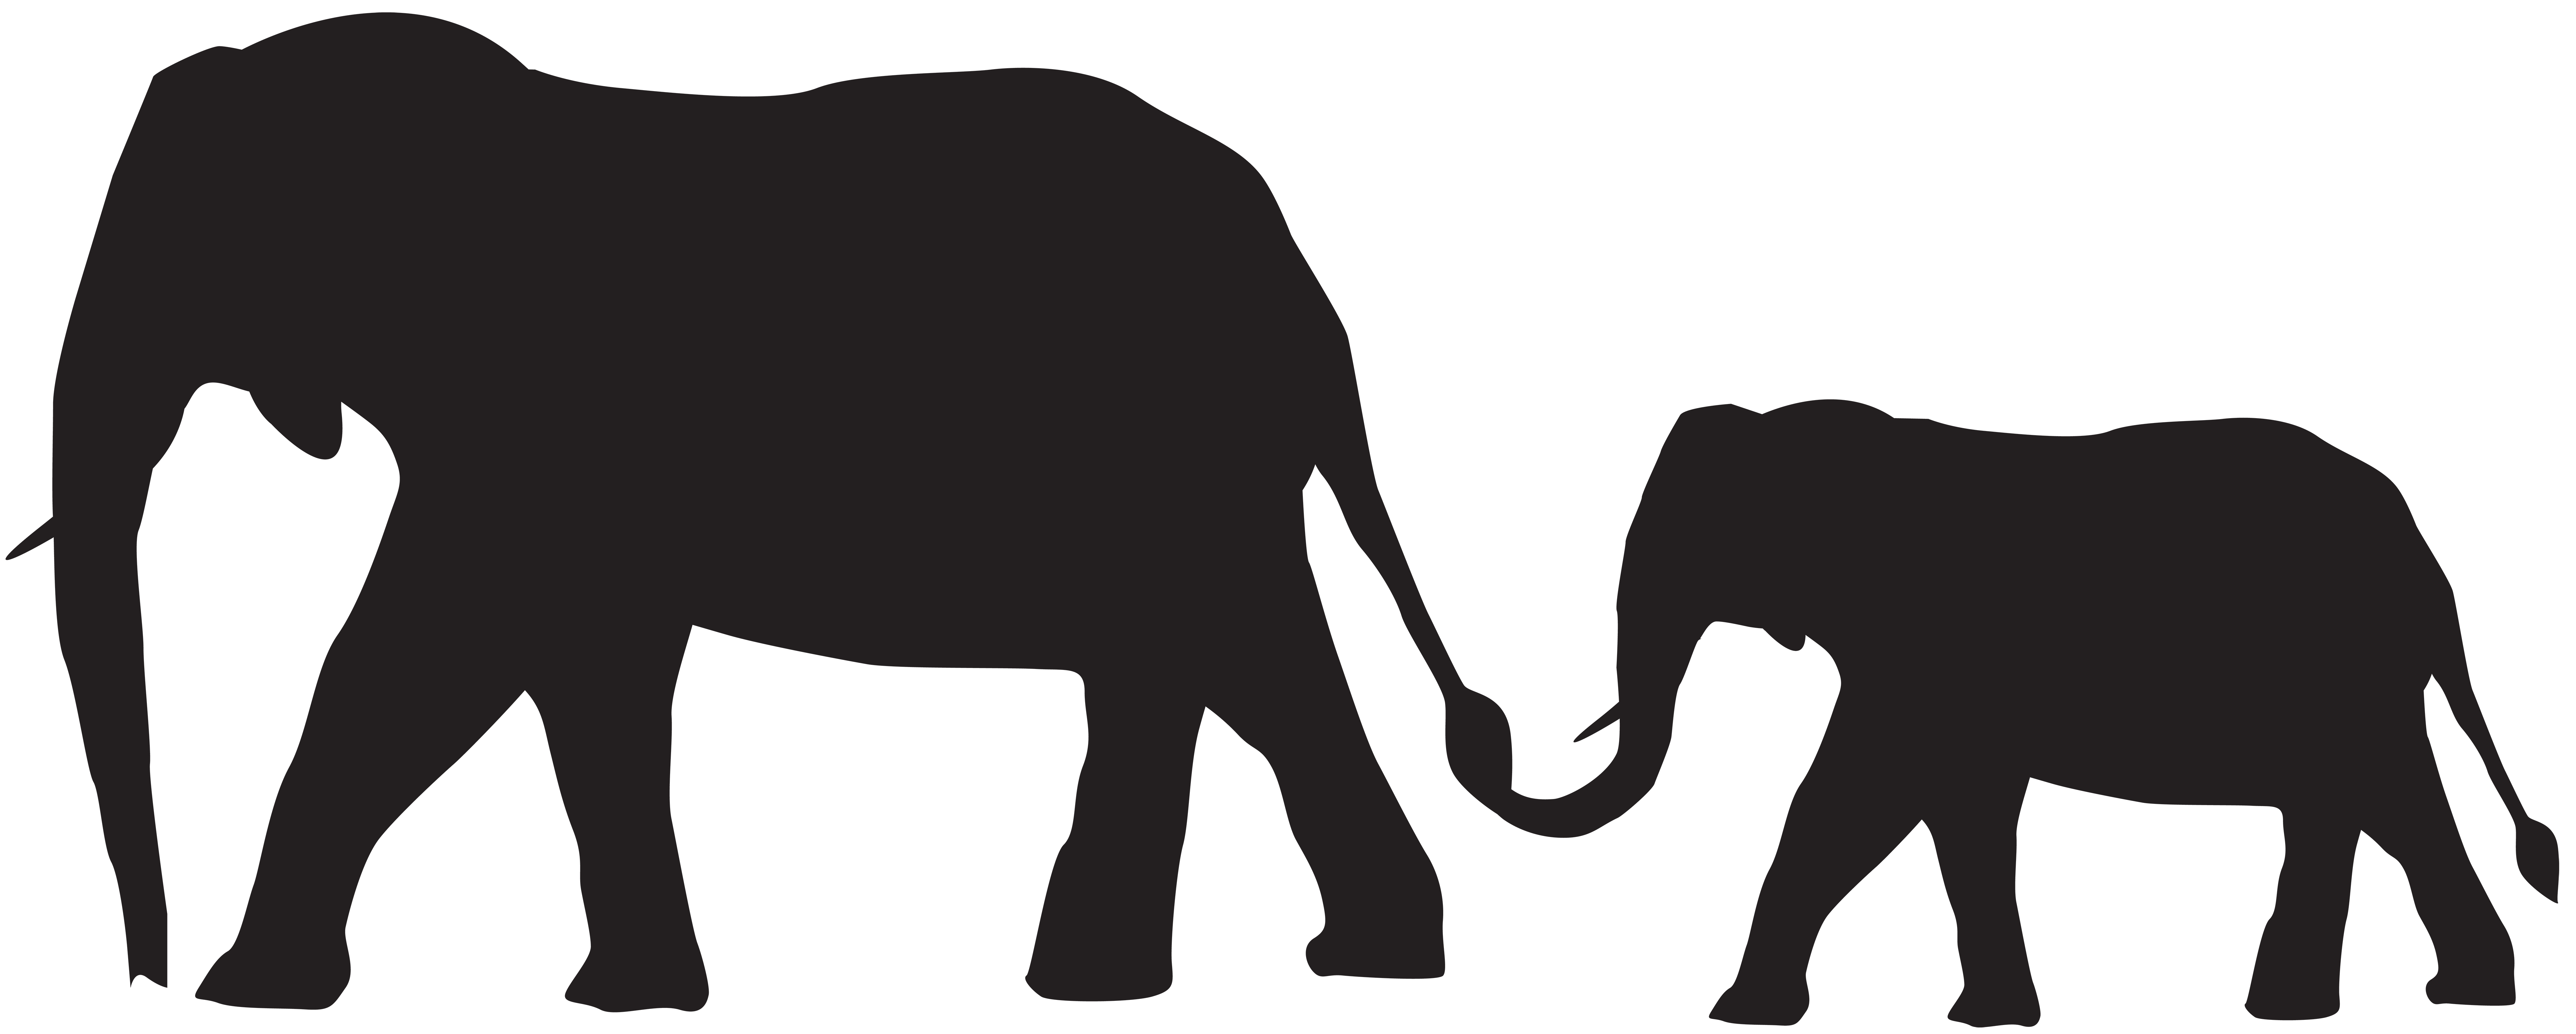 8000x3212 Mother And Baby Elephants Silhouette Png Clip Art Imageu200b Gallery